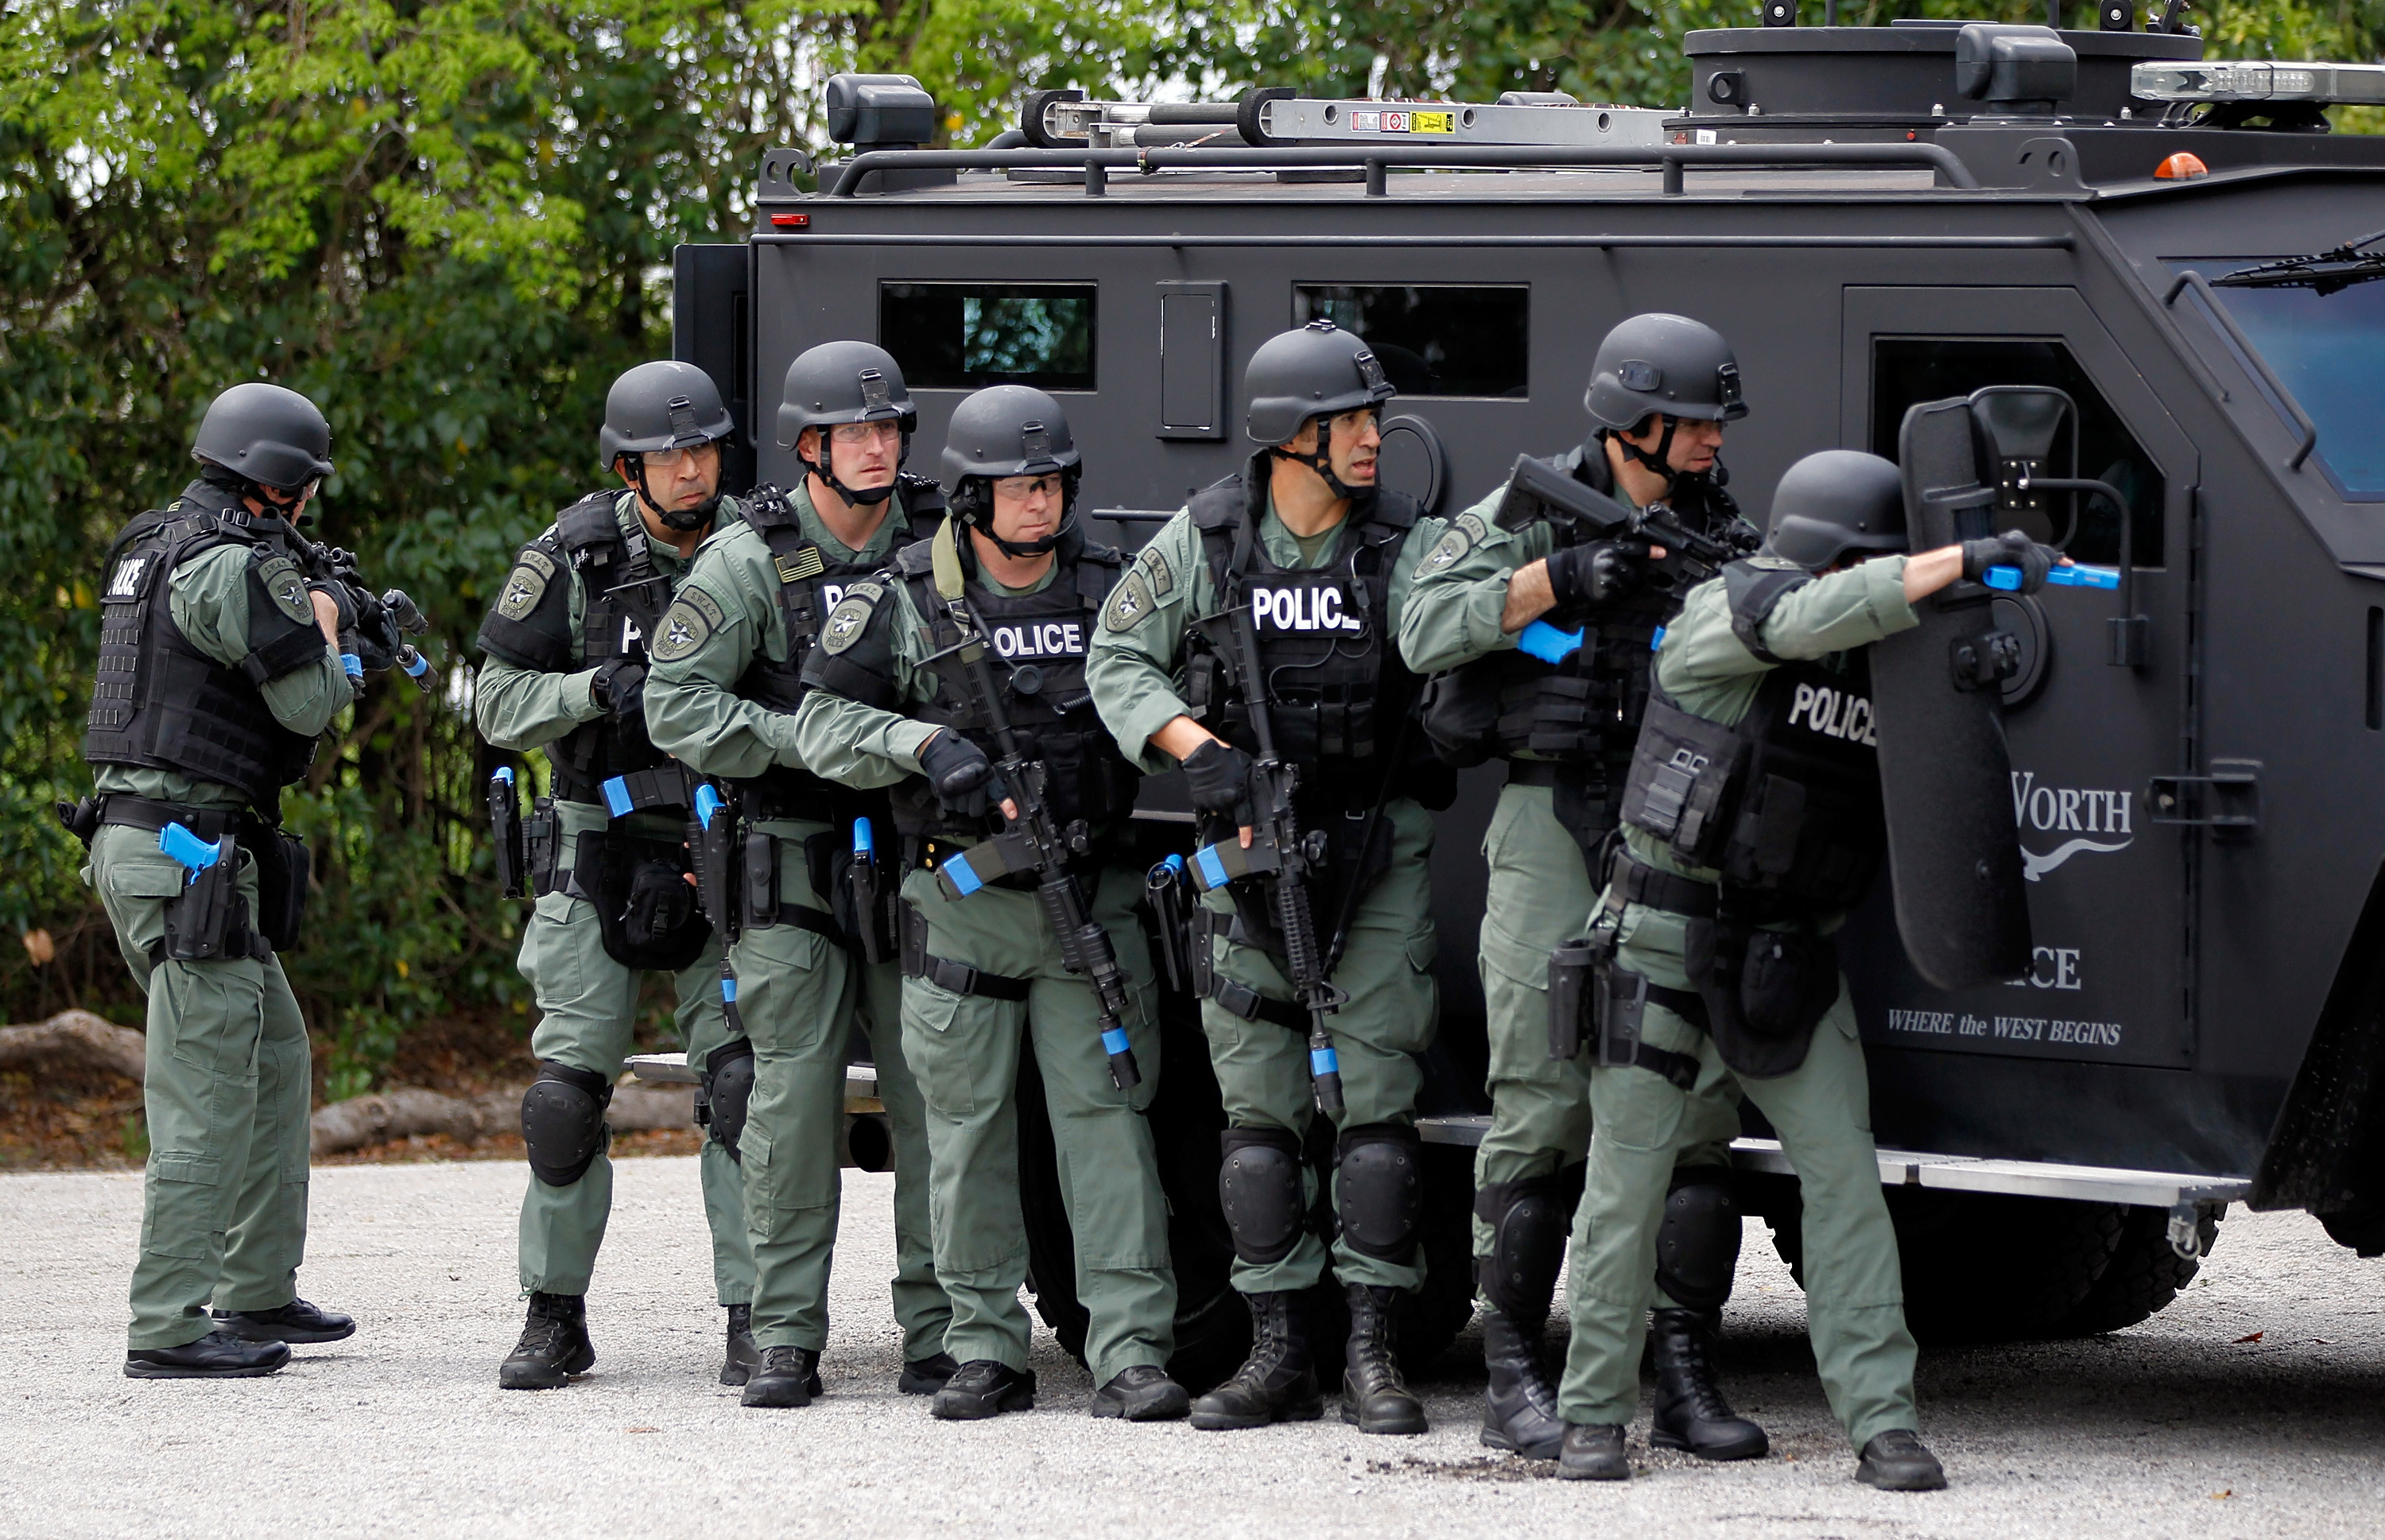 Res: 3000x1937, Swat Team In Action Wallpapers For Android